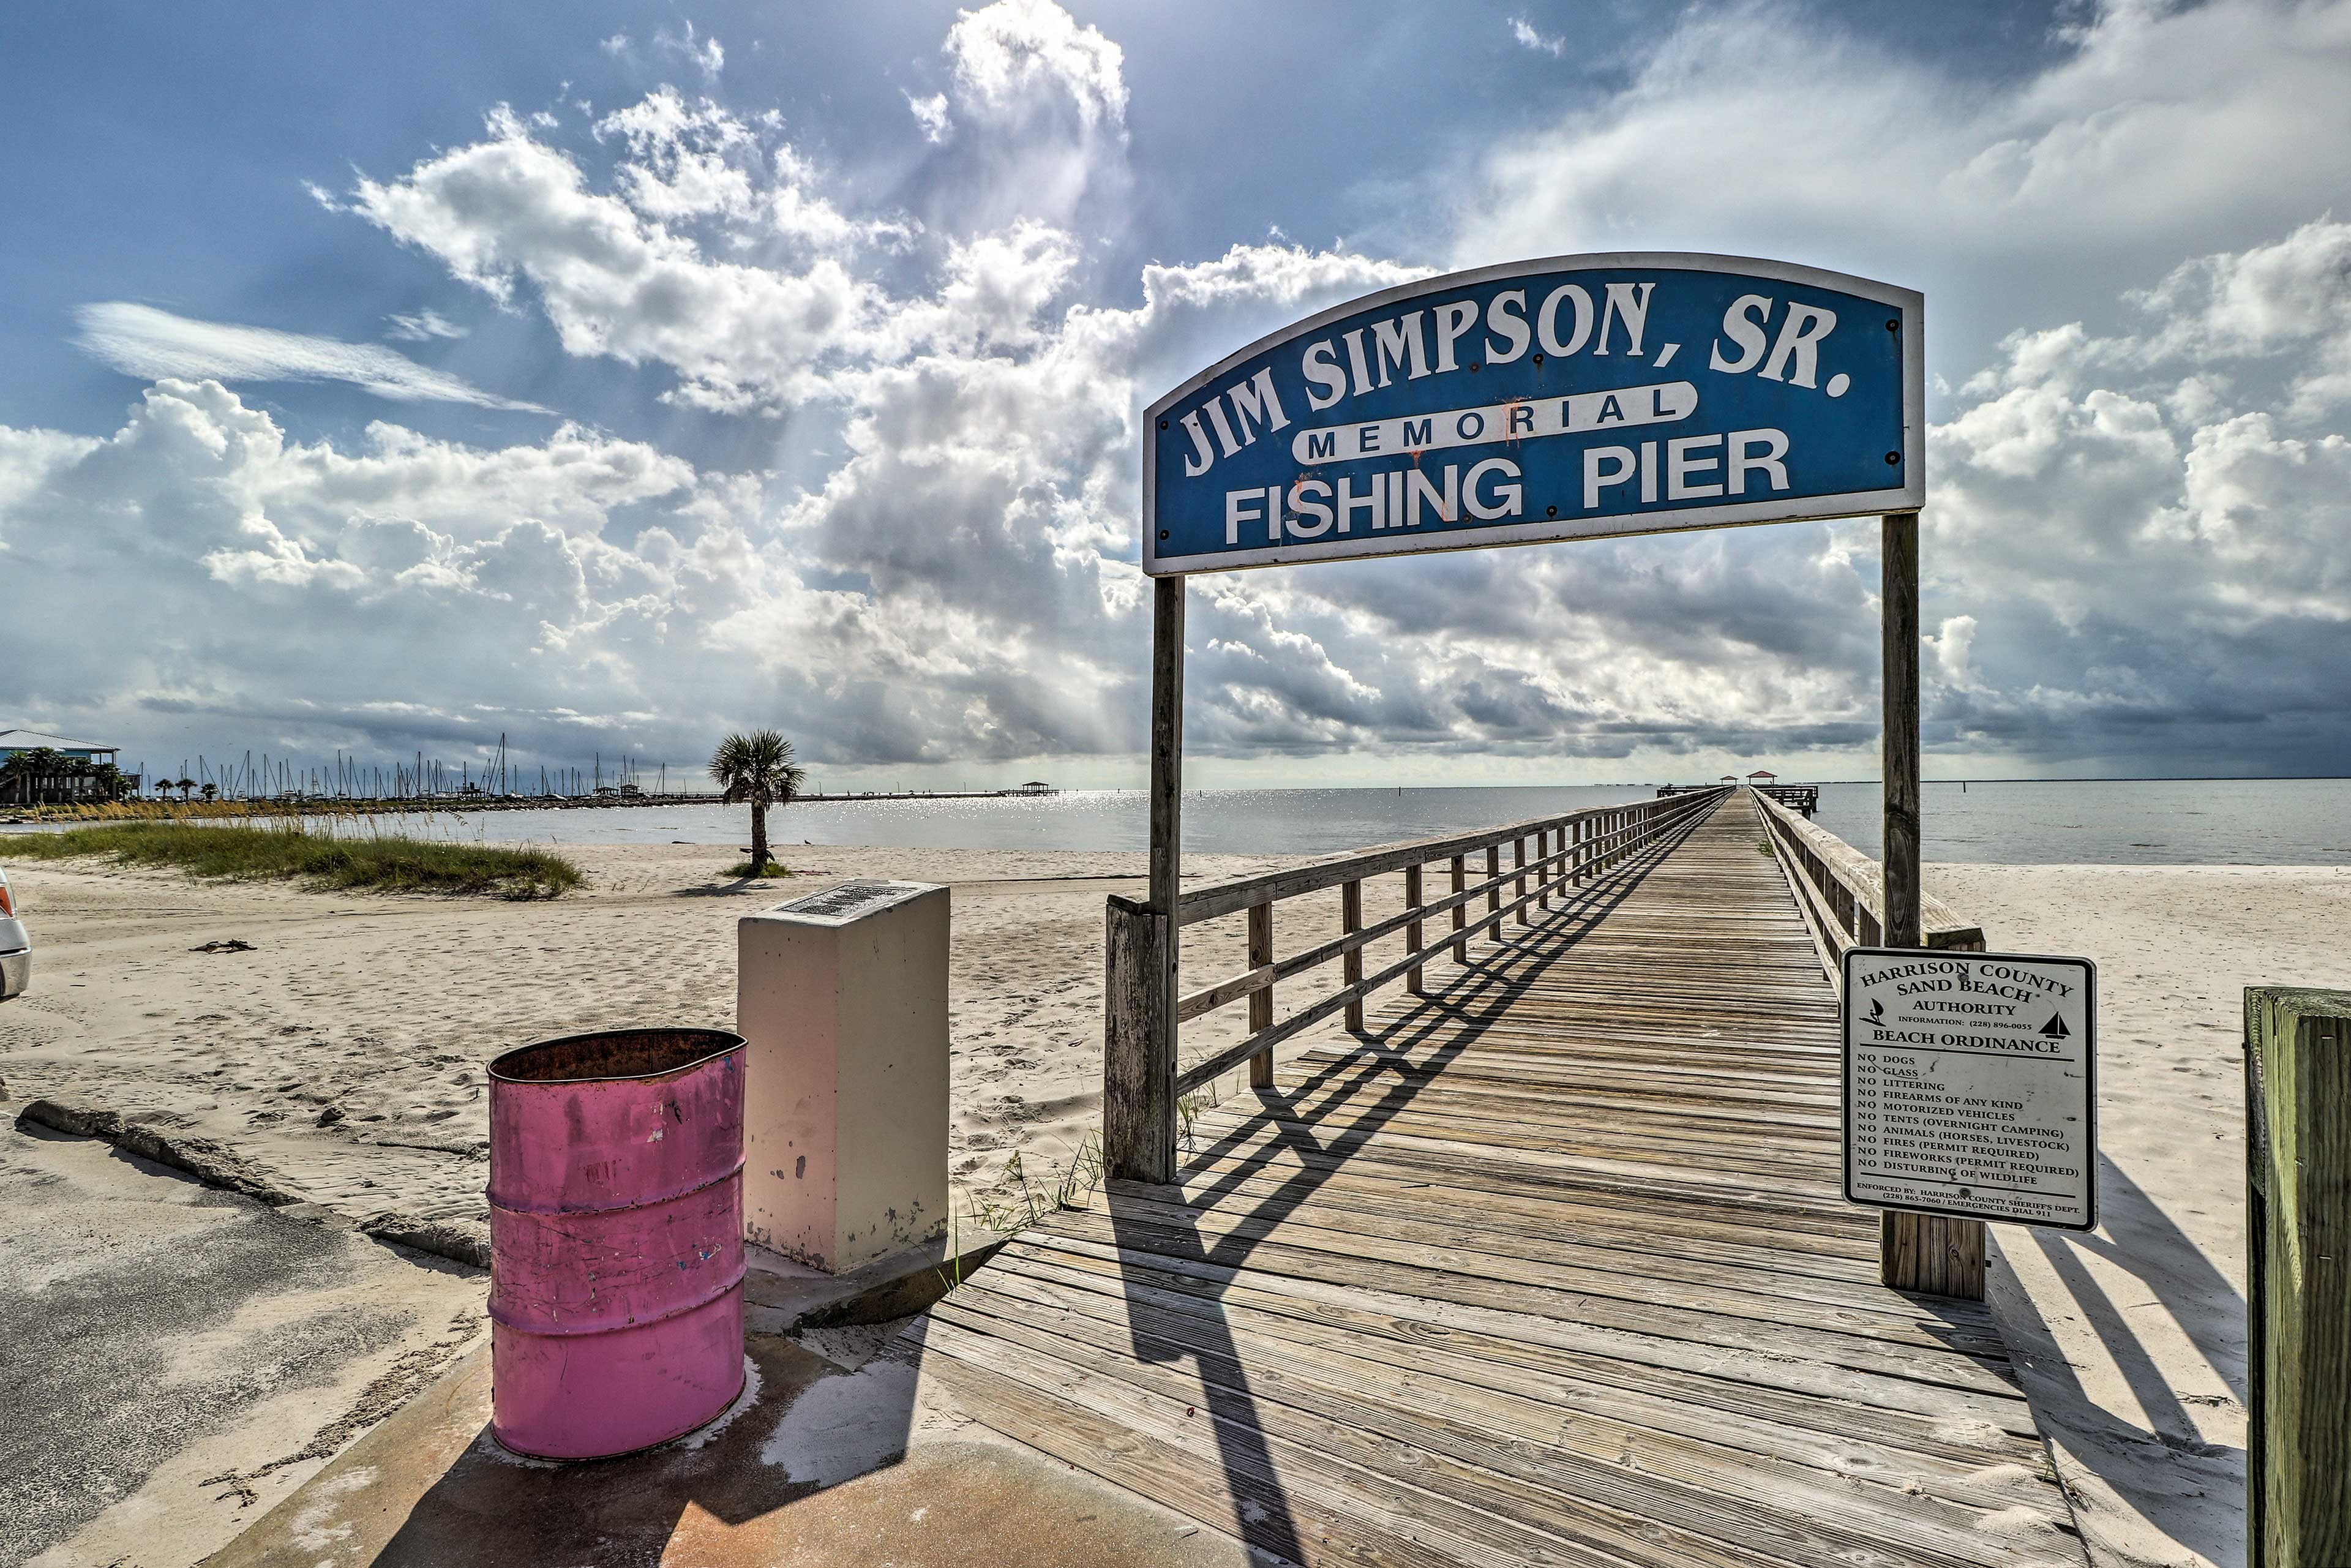 Try your luck at snagging a catch of the day at this nearby pier.